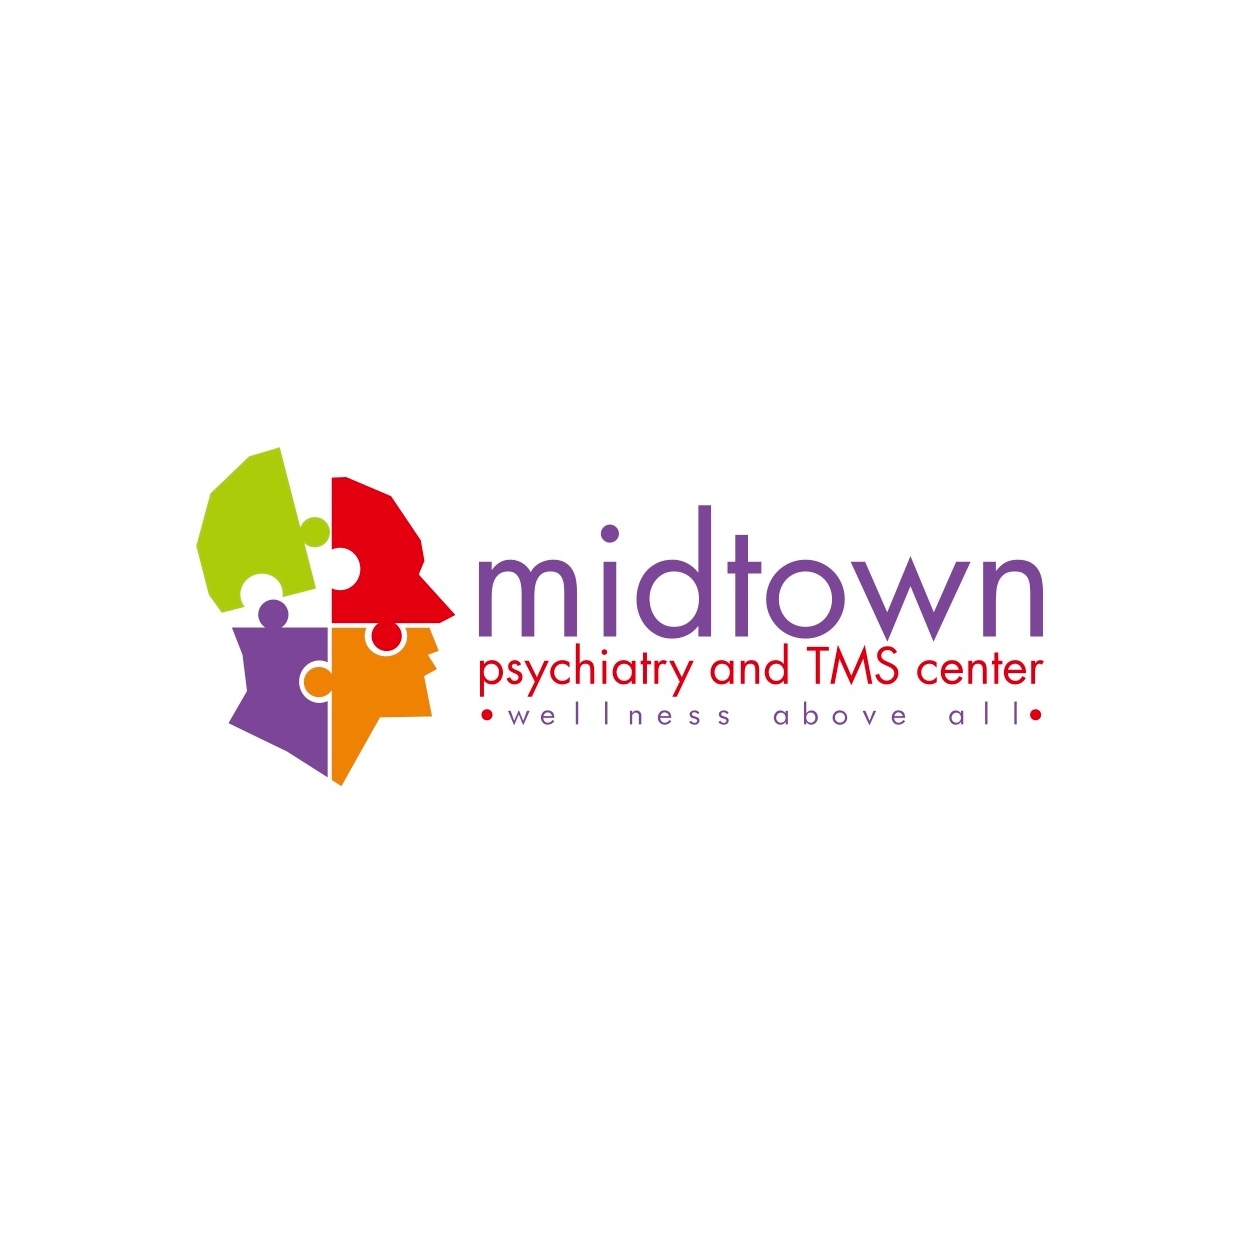 Midtown Psychiatry and TMS Center